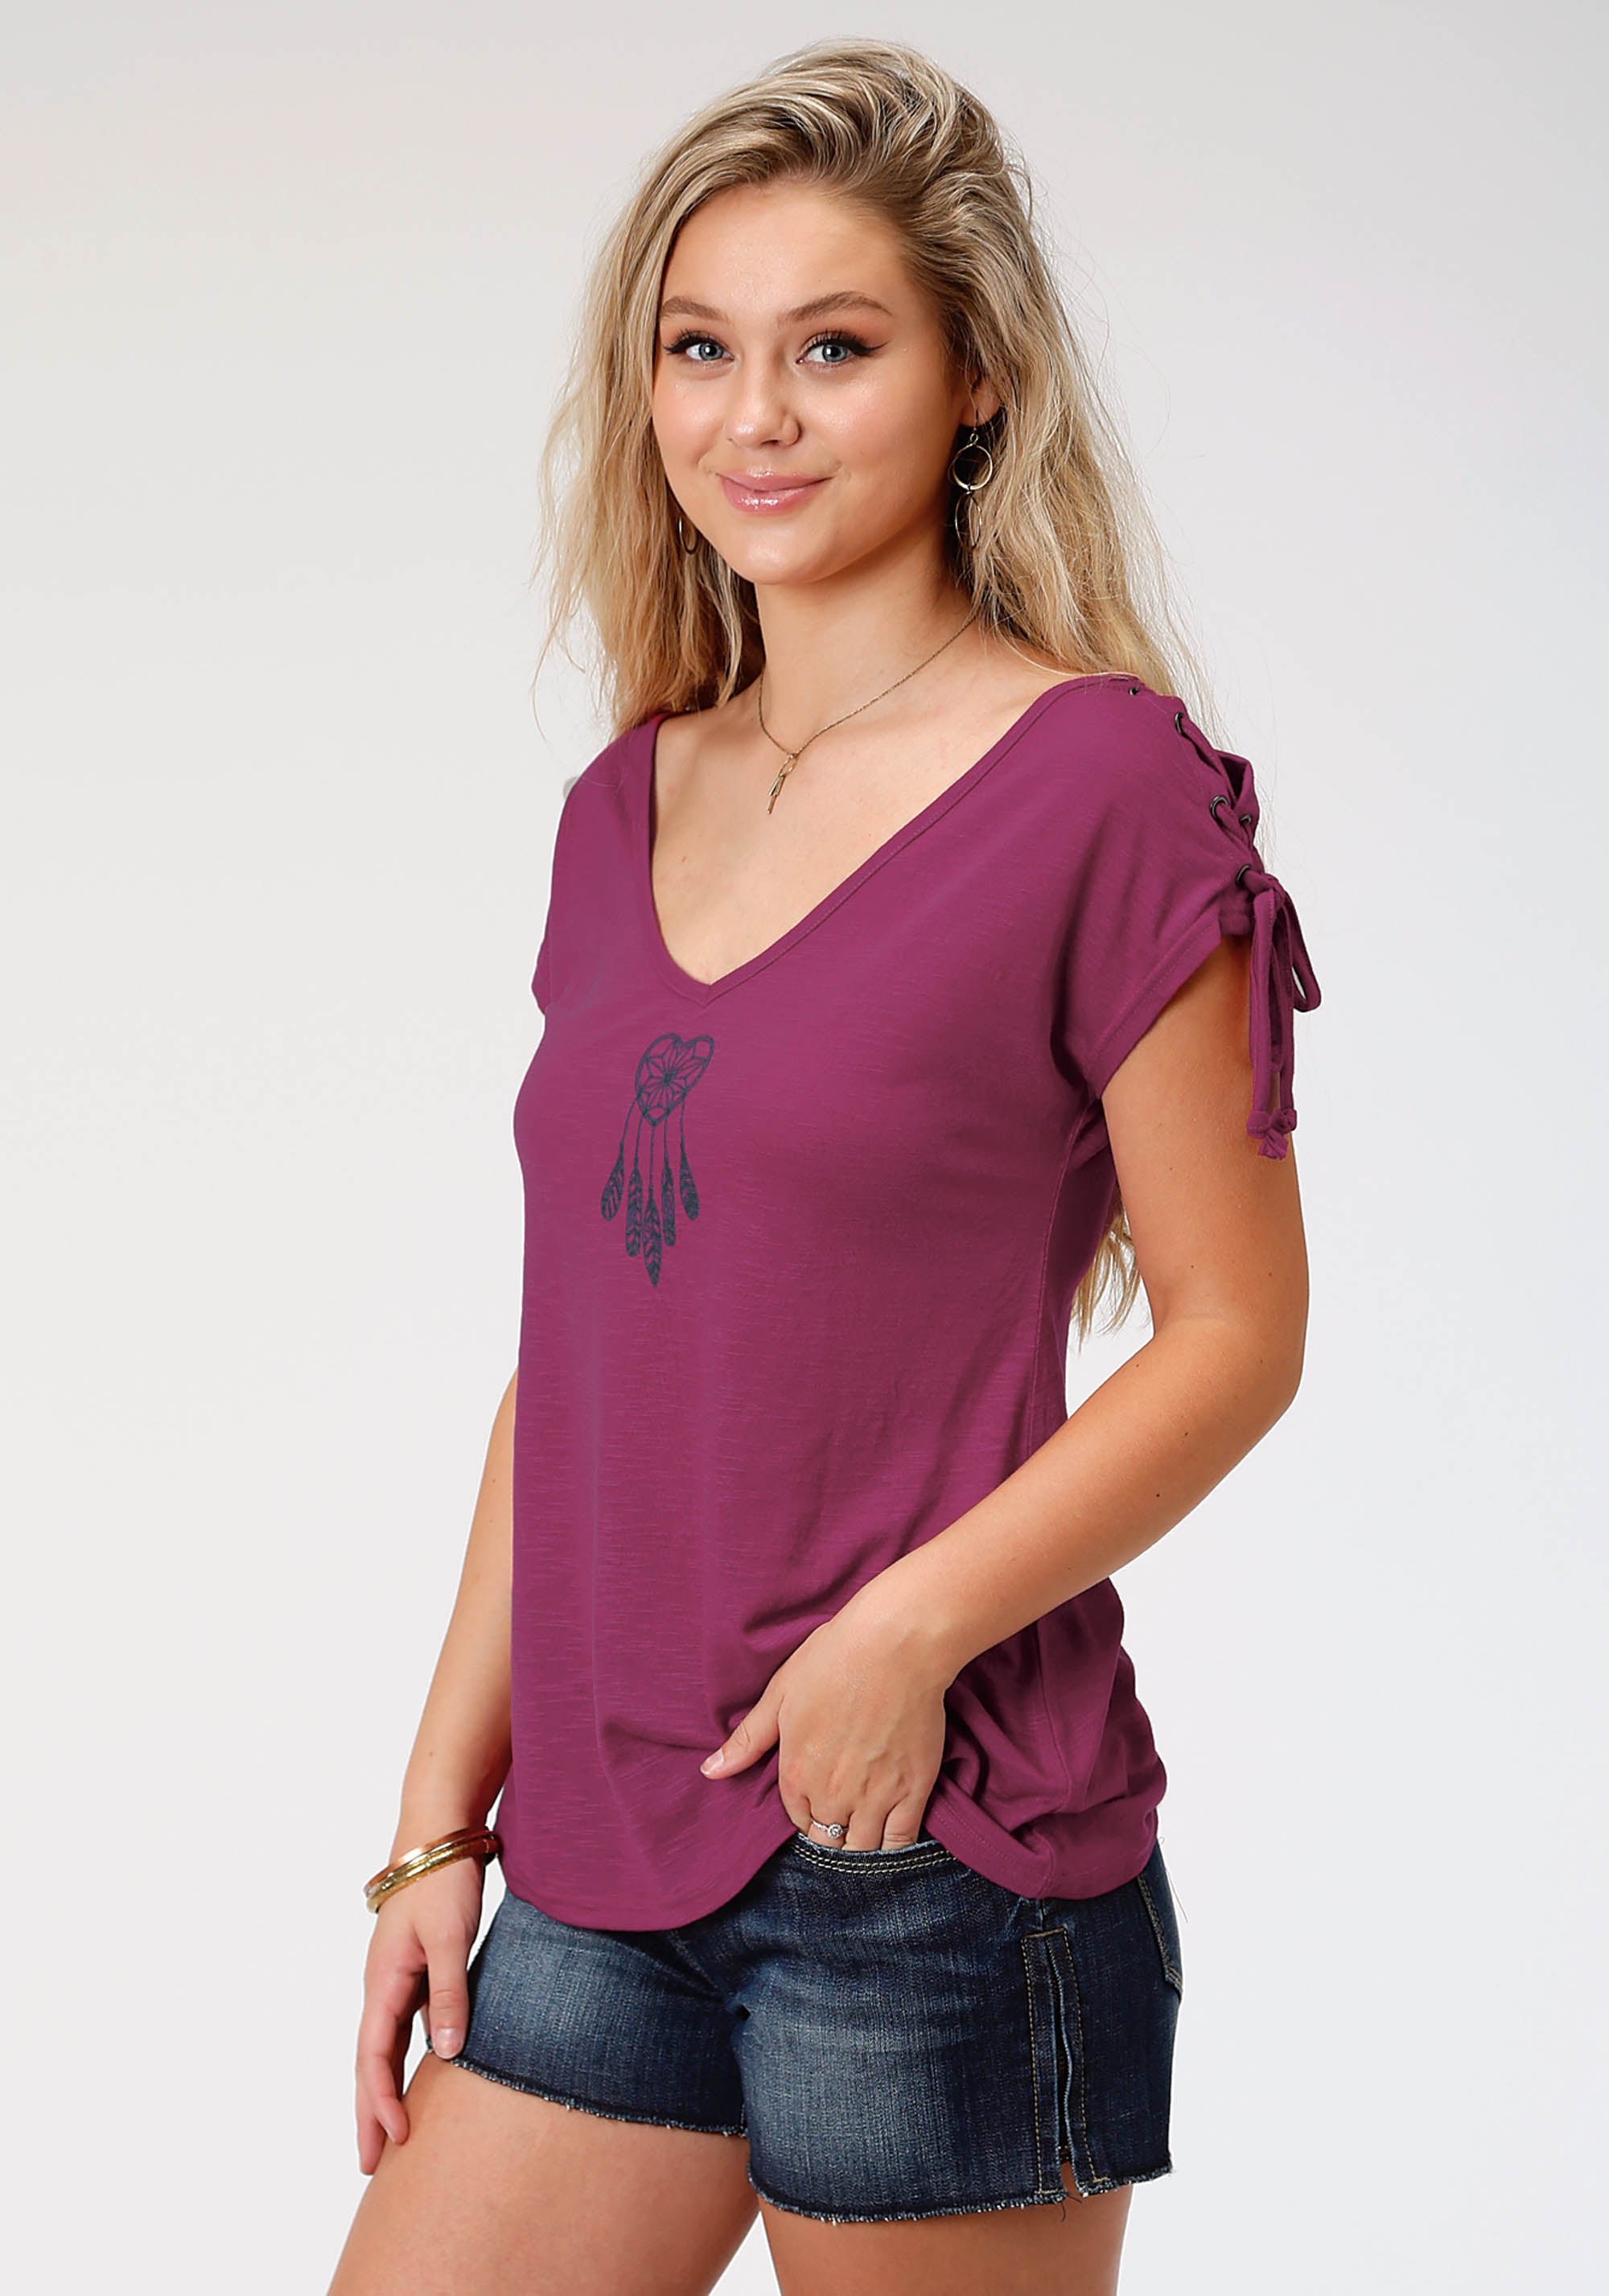 ROPER WOMENS PURPLE 8173 POLY RAYON LACE-UP SS TEE FIVE STAR COLLECTION- SUMMER II SHORT SLEEVE